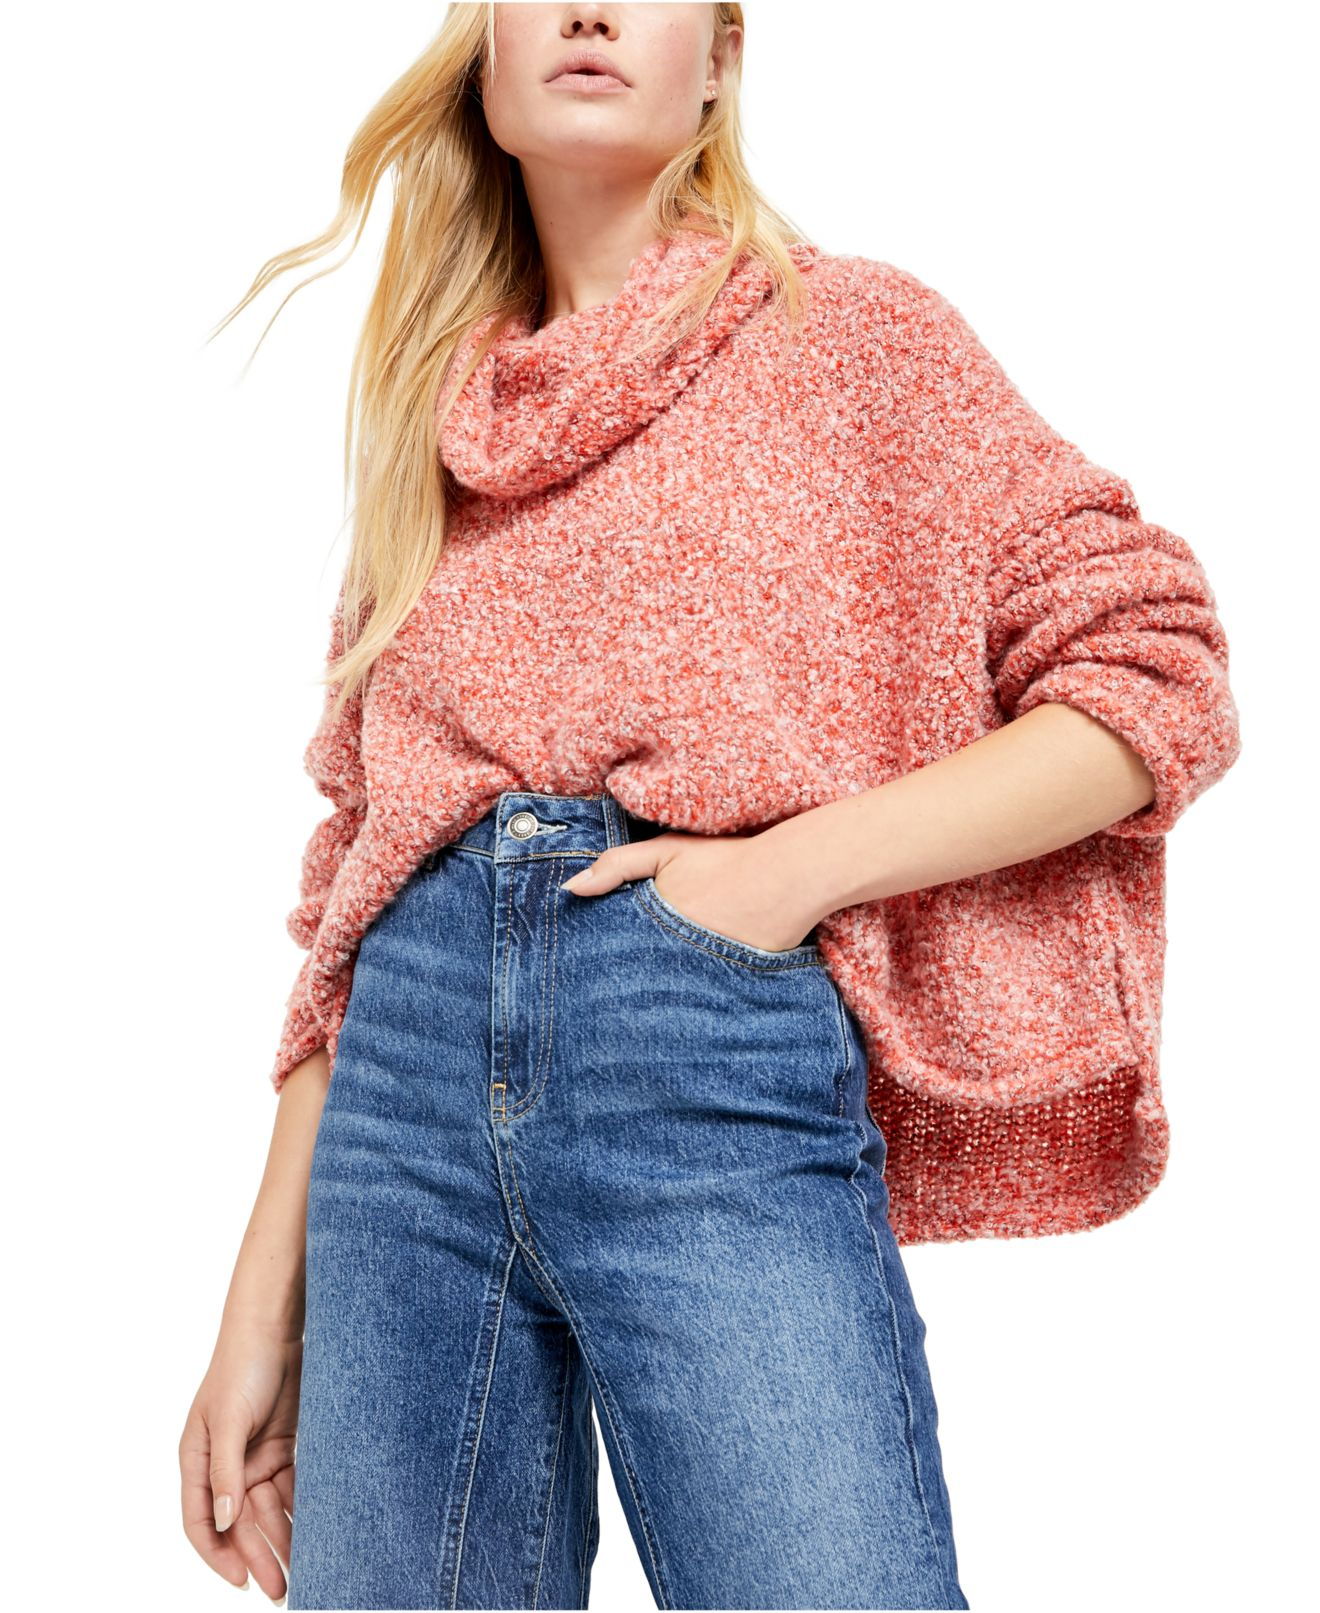 Free People Women's Sweater Red Lotus Size Small S BFF Cowl Neck